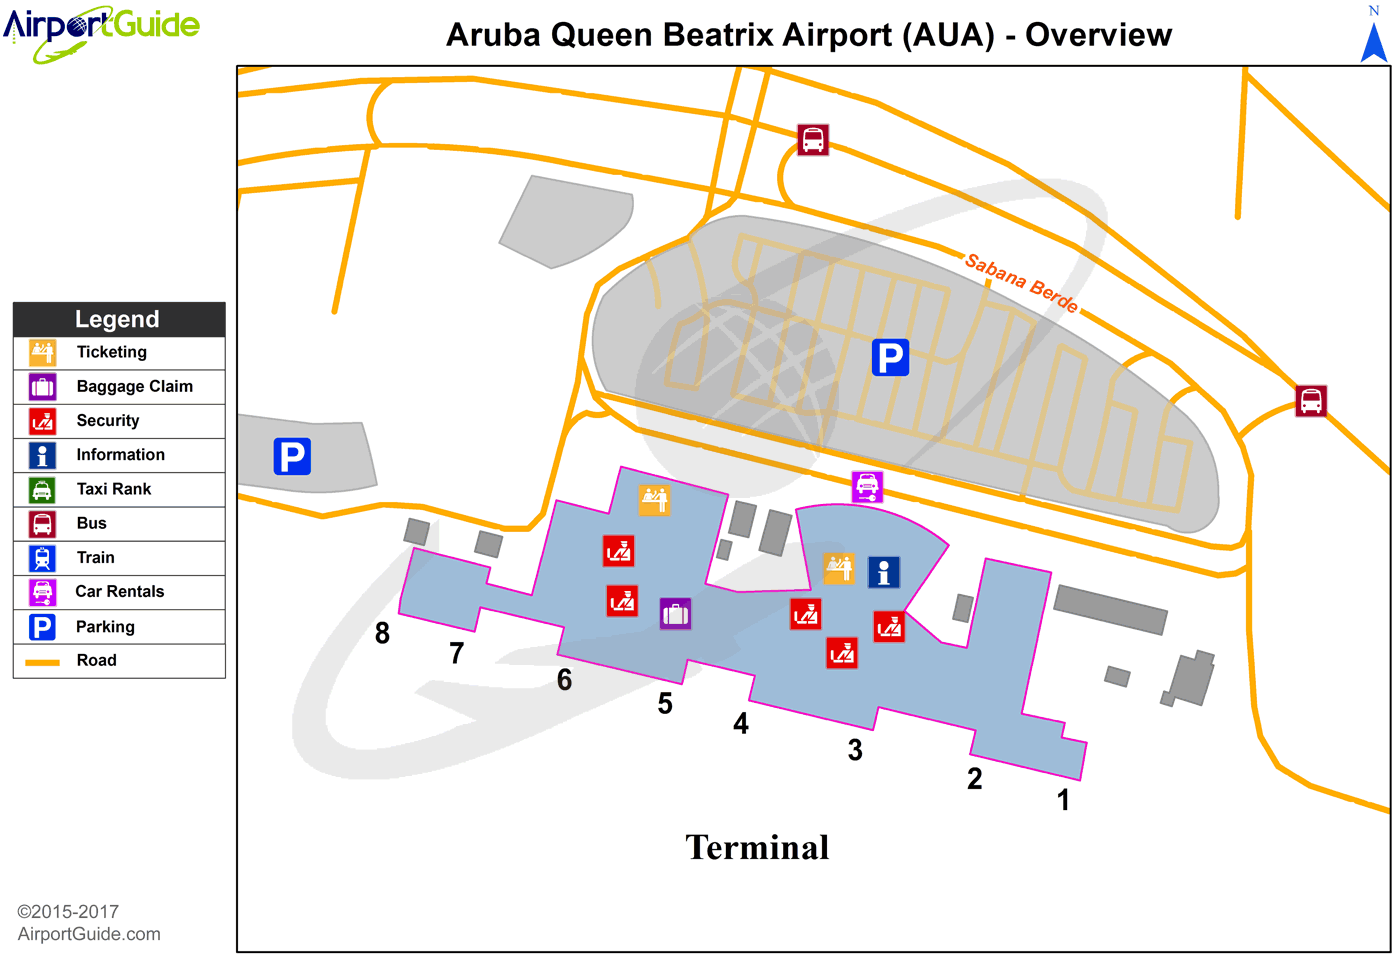 Oranjestad - Queen Beatrix International (AUA) Airport Terminal Map - Overview